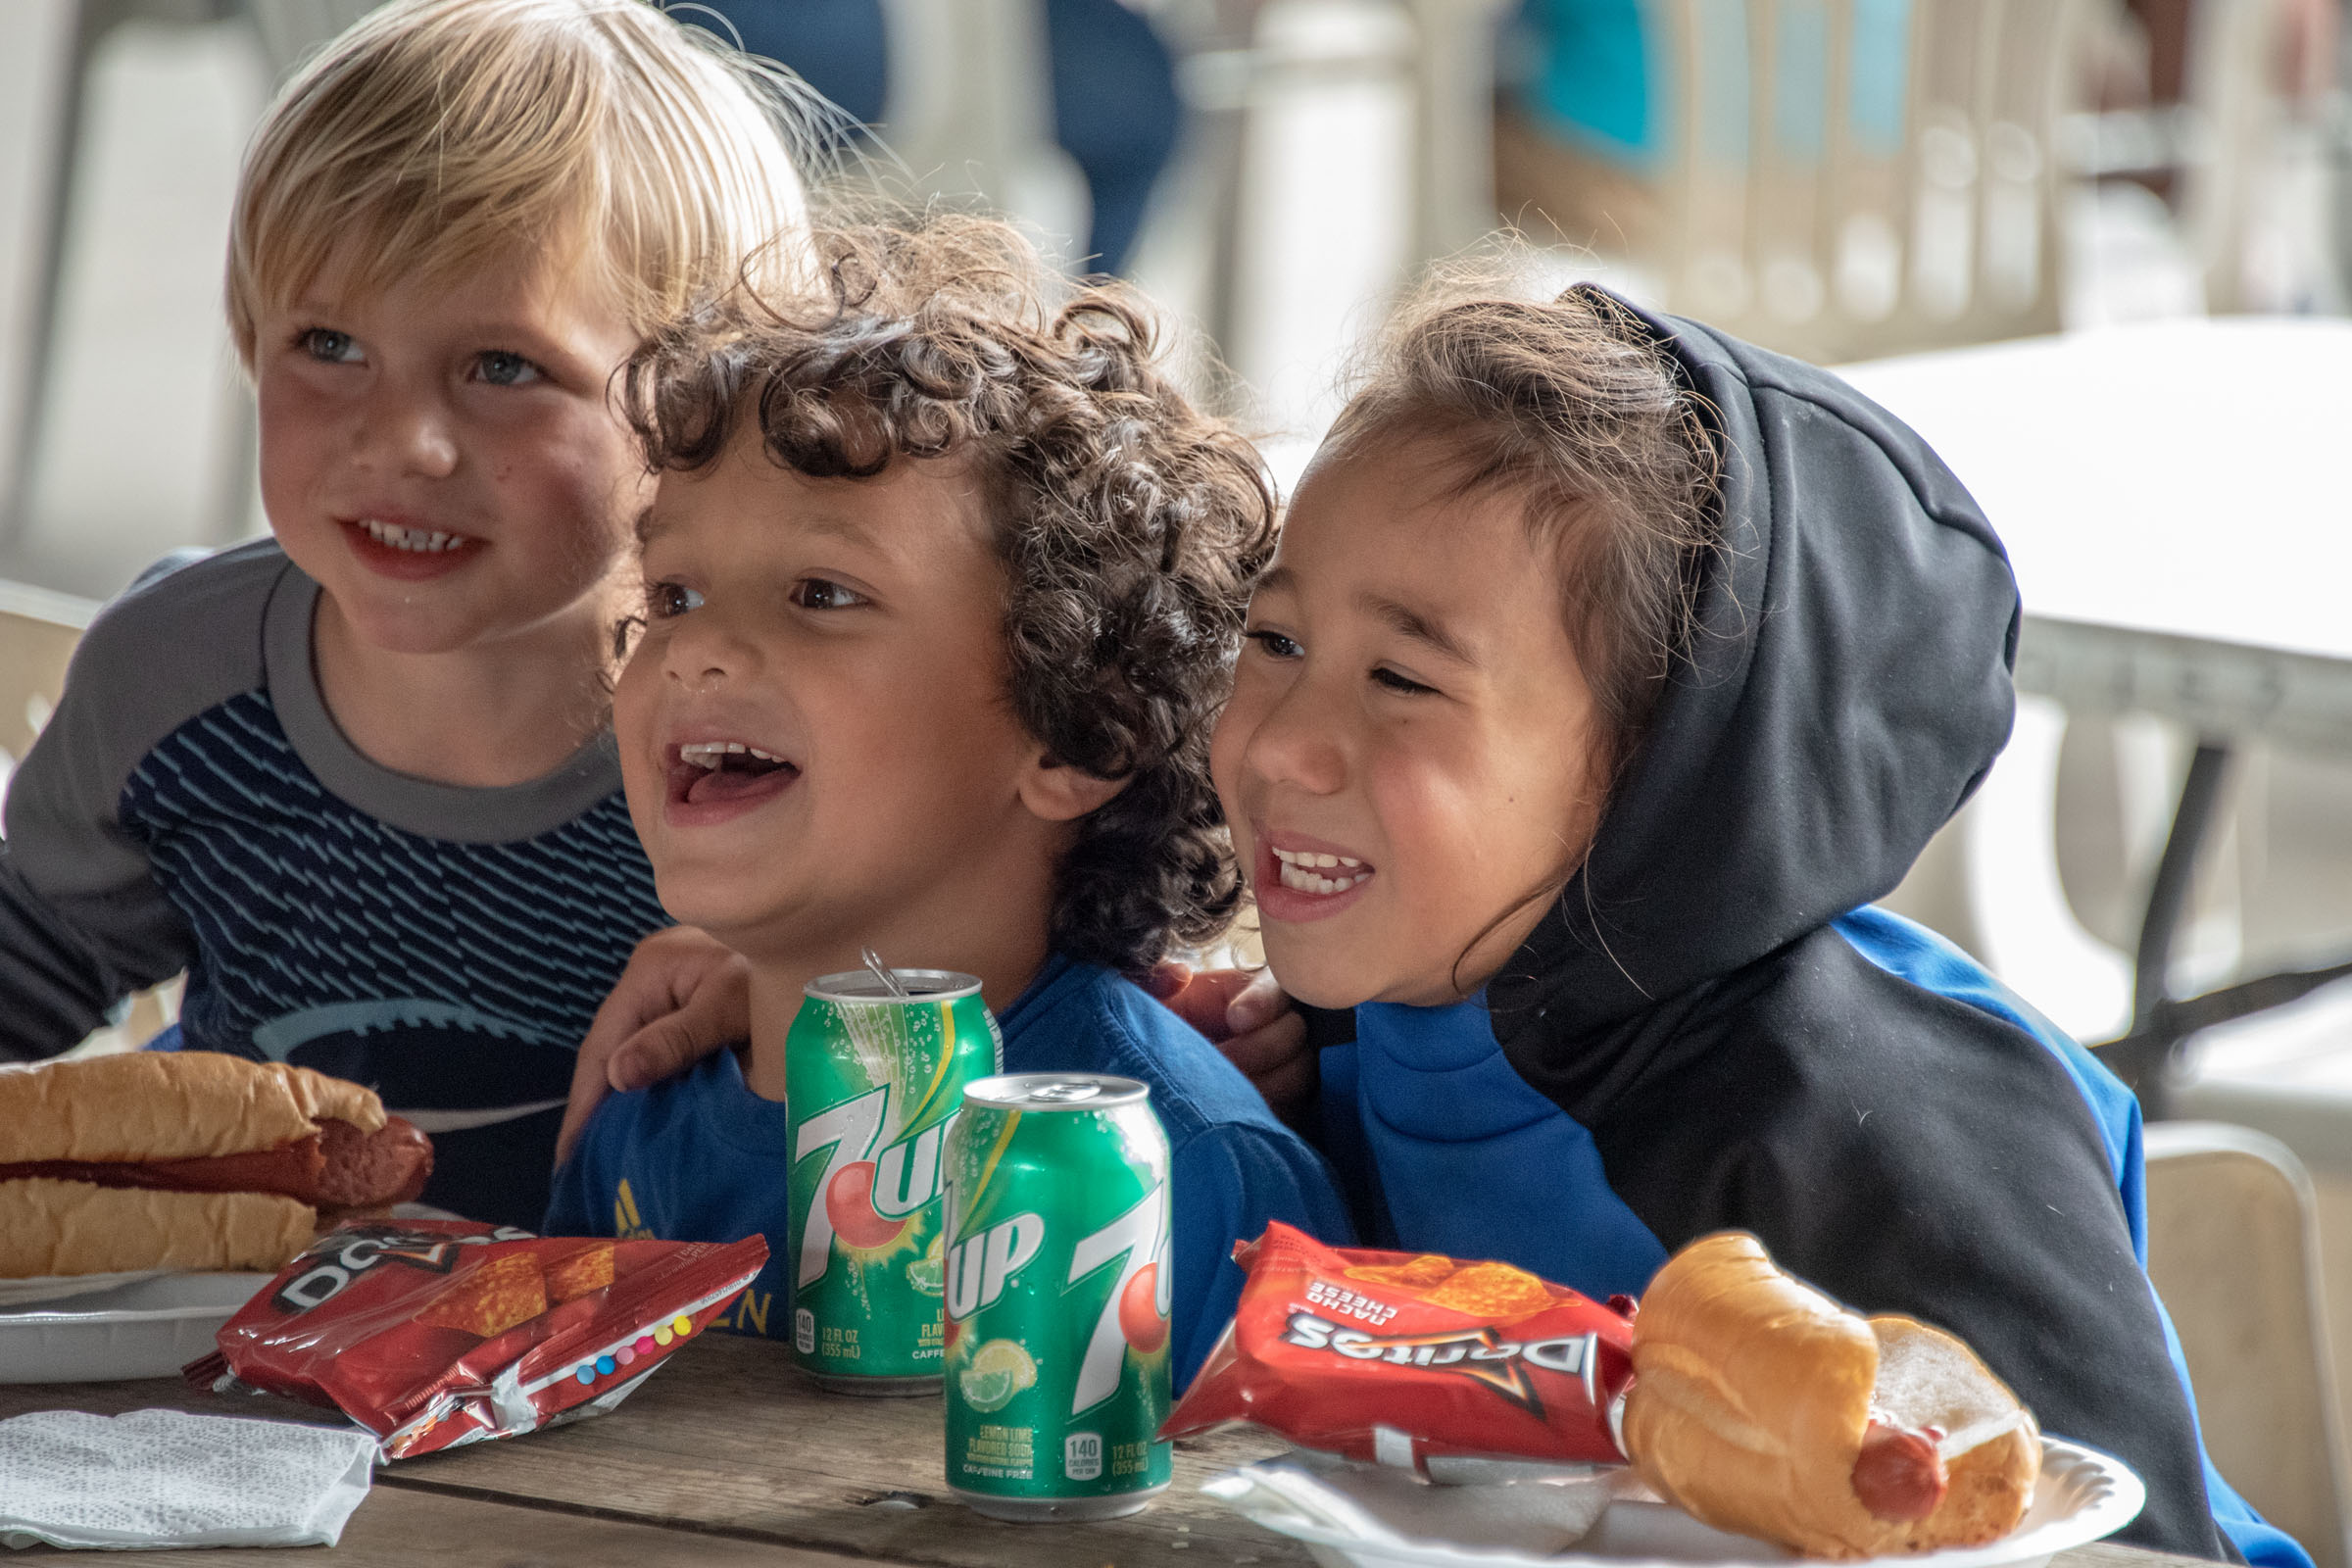 Kids smiling and eating hot dogs